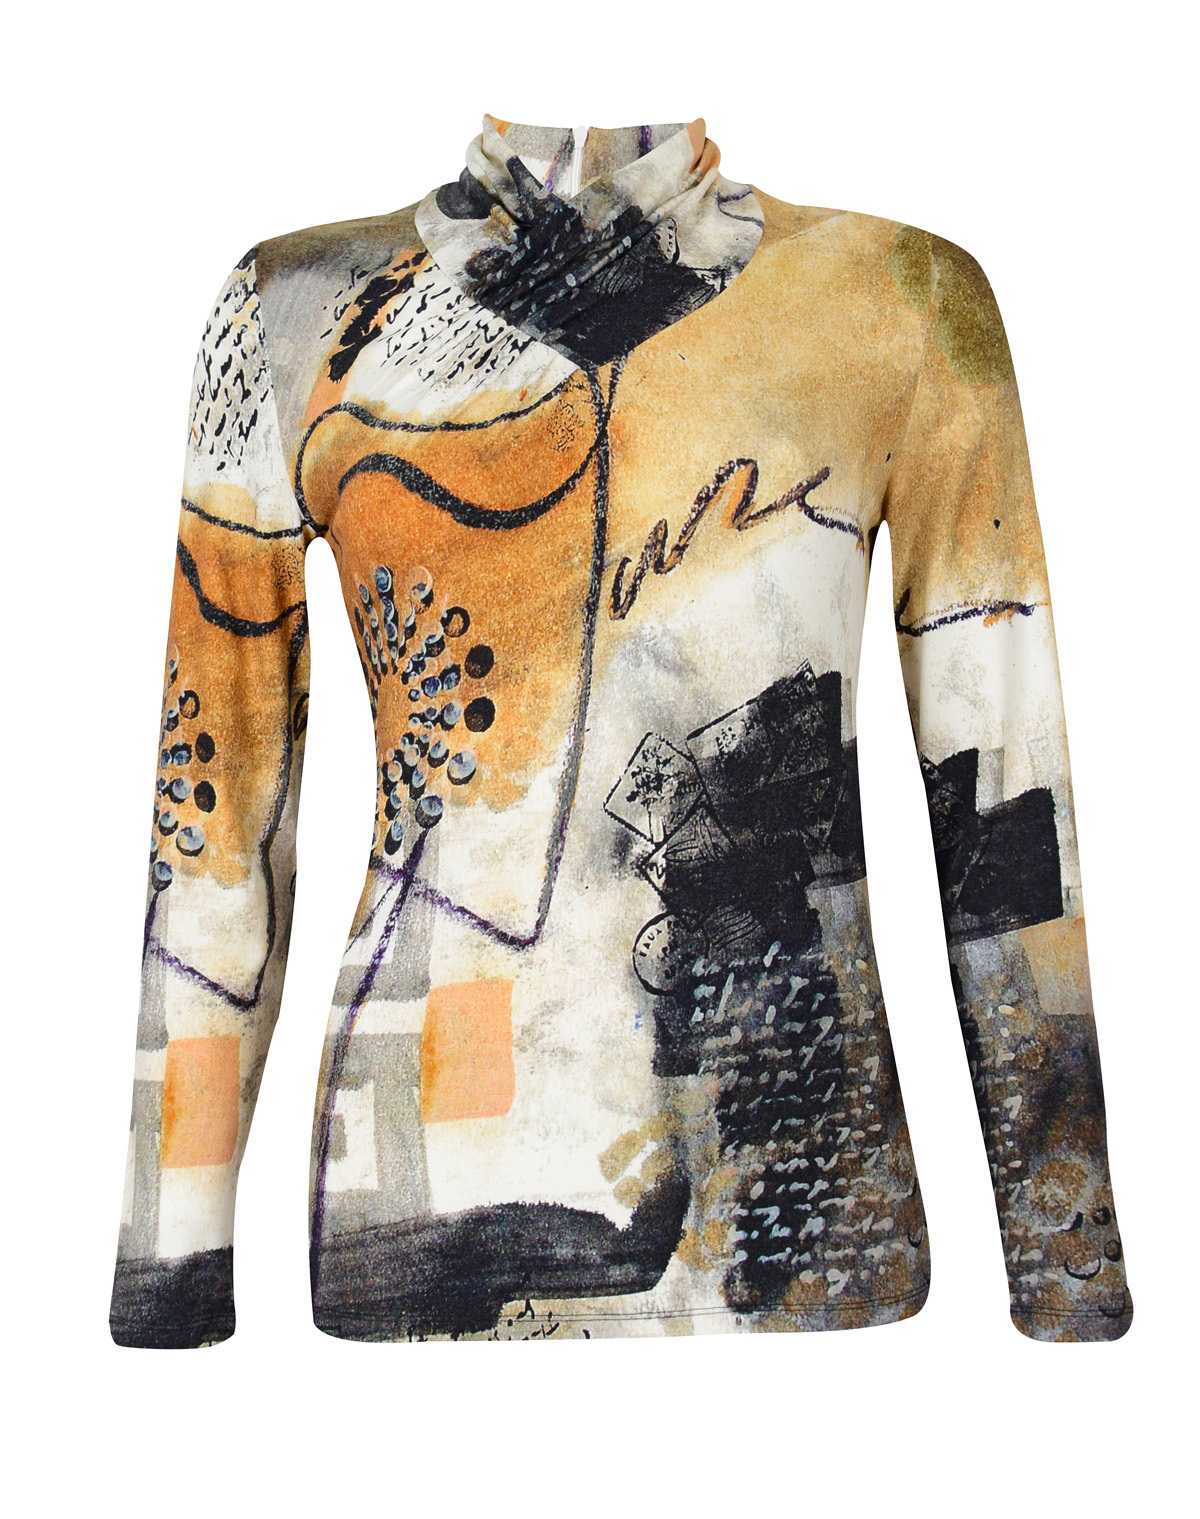 Simply Art Dolcezza: Romantic Rhythm Quilled Abstract Art Tunic SOLD OUT Dolcezza_SimplyArt_59602